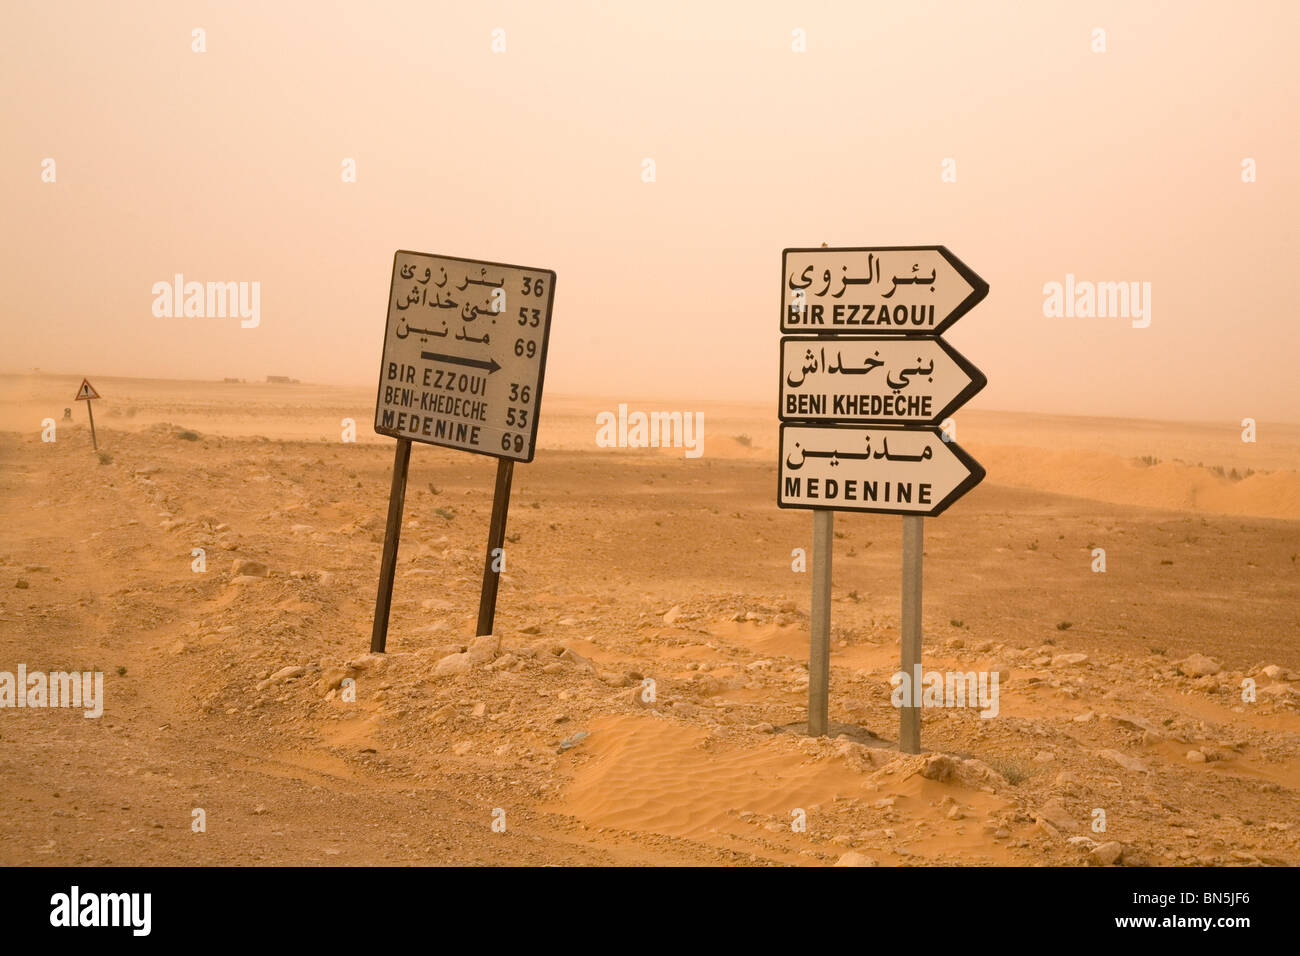 Road signs in the Sahara Desert are written with Arabic and Latin letters. - Stock Image